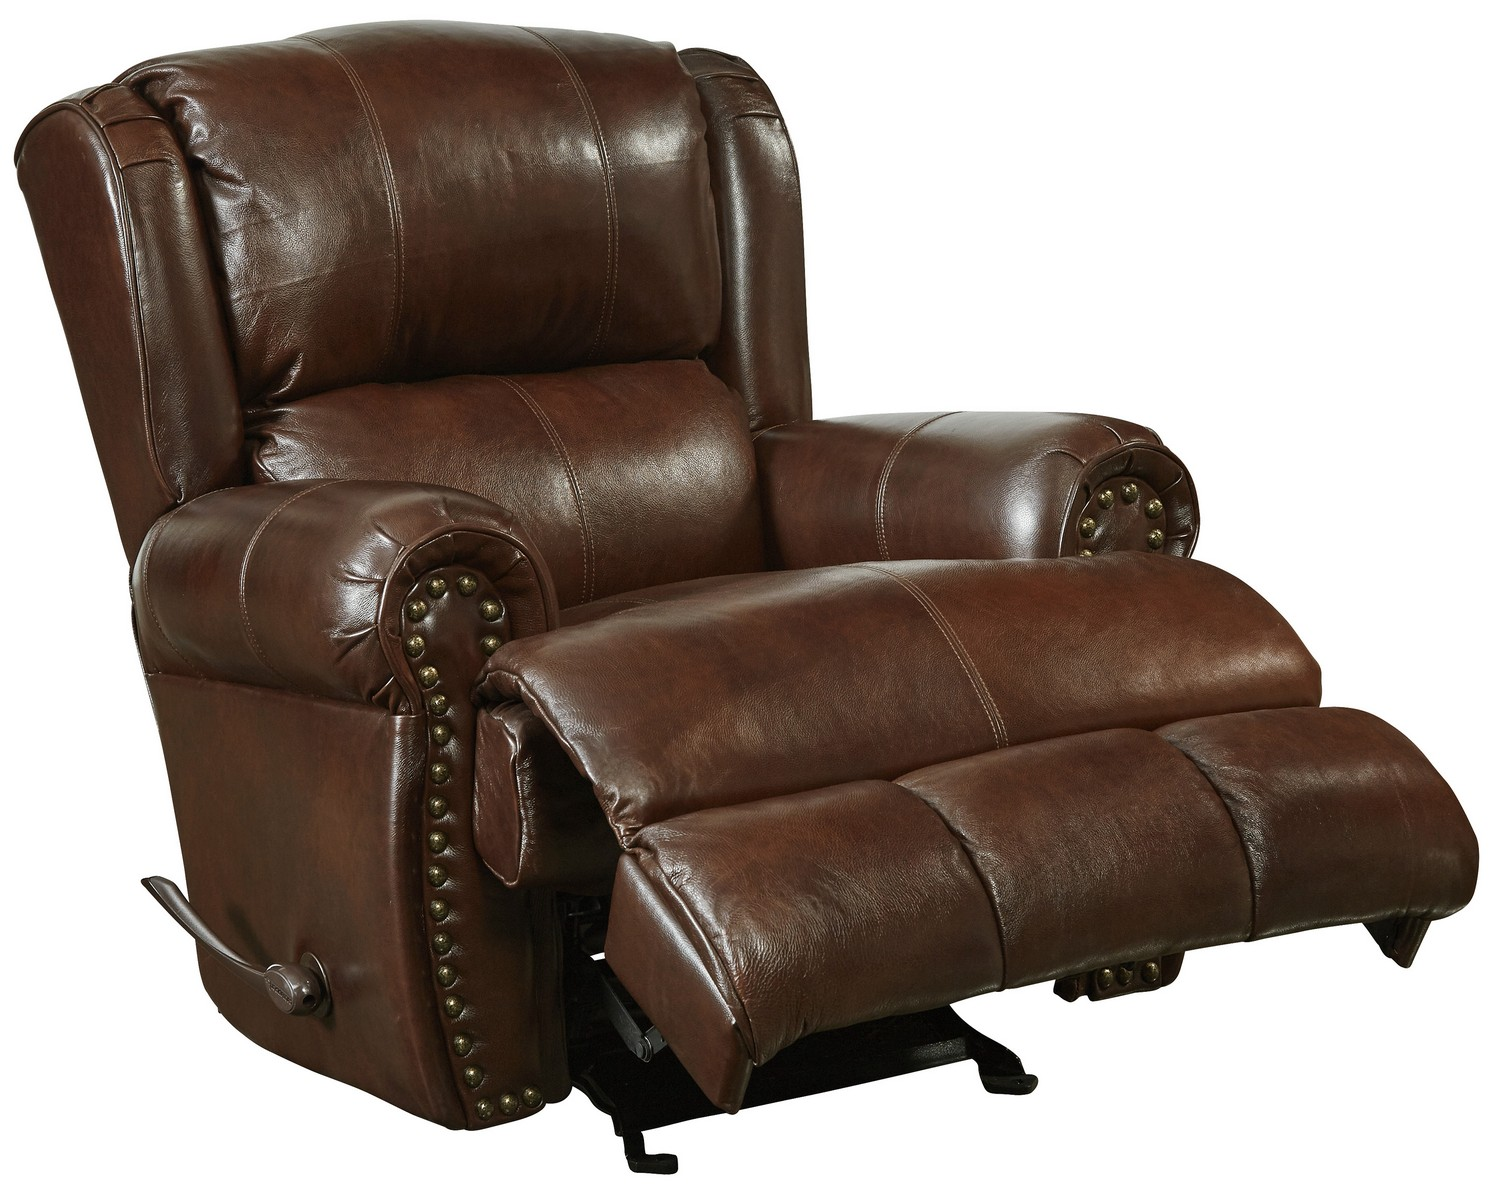 CatNapper Duncan Top Grain Leather Touch Power Deluxe Lay Flat Recliner - Walnut